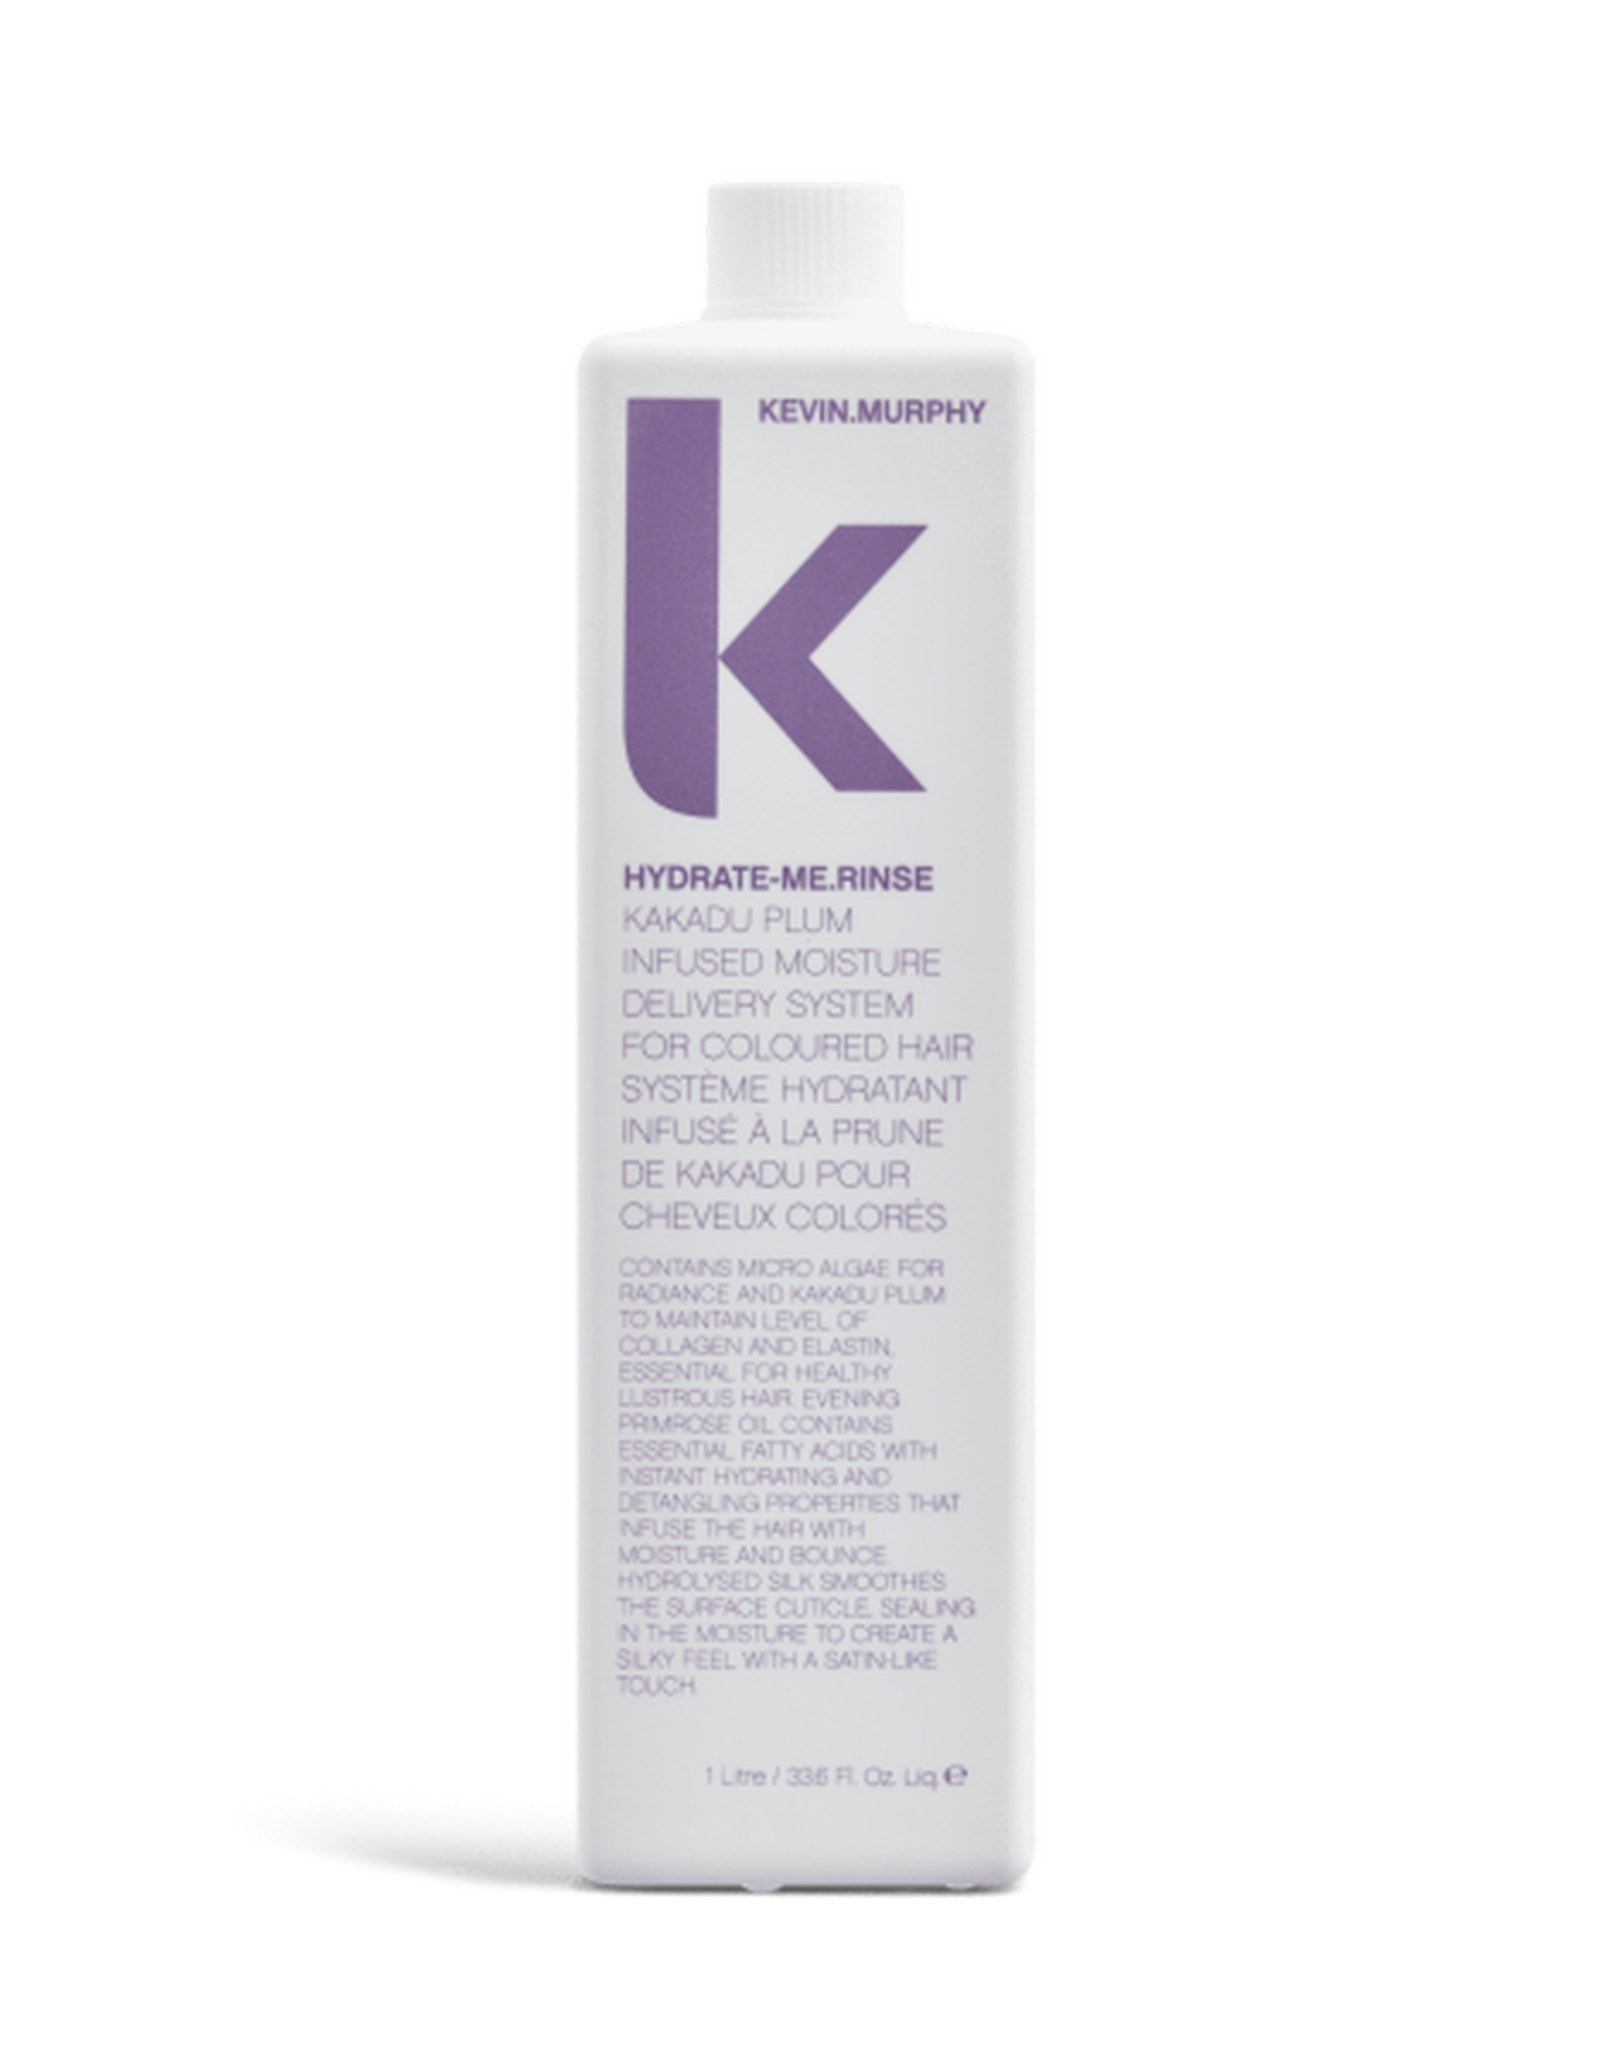 KEVIN.MURPHY Hydrate-Me.Rinse (Litre)